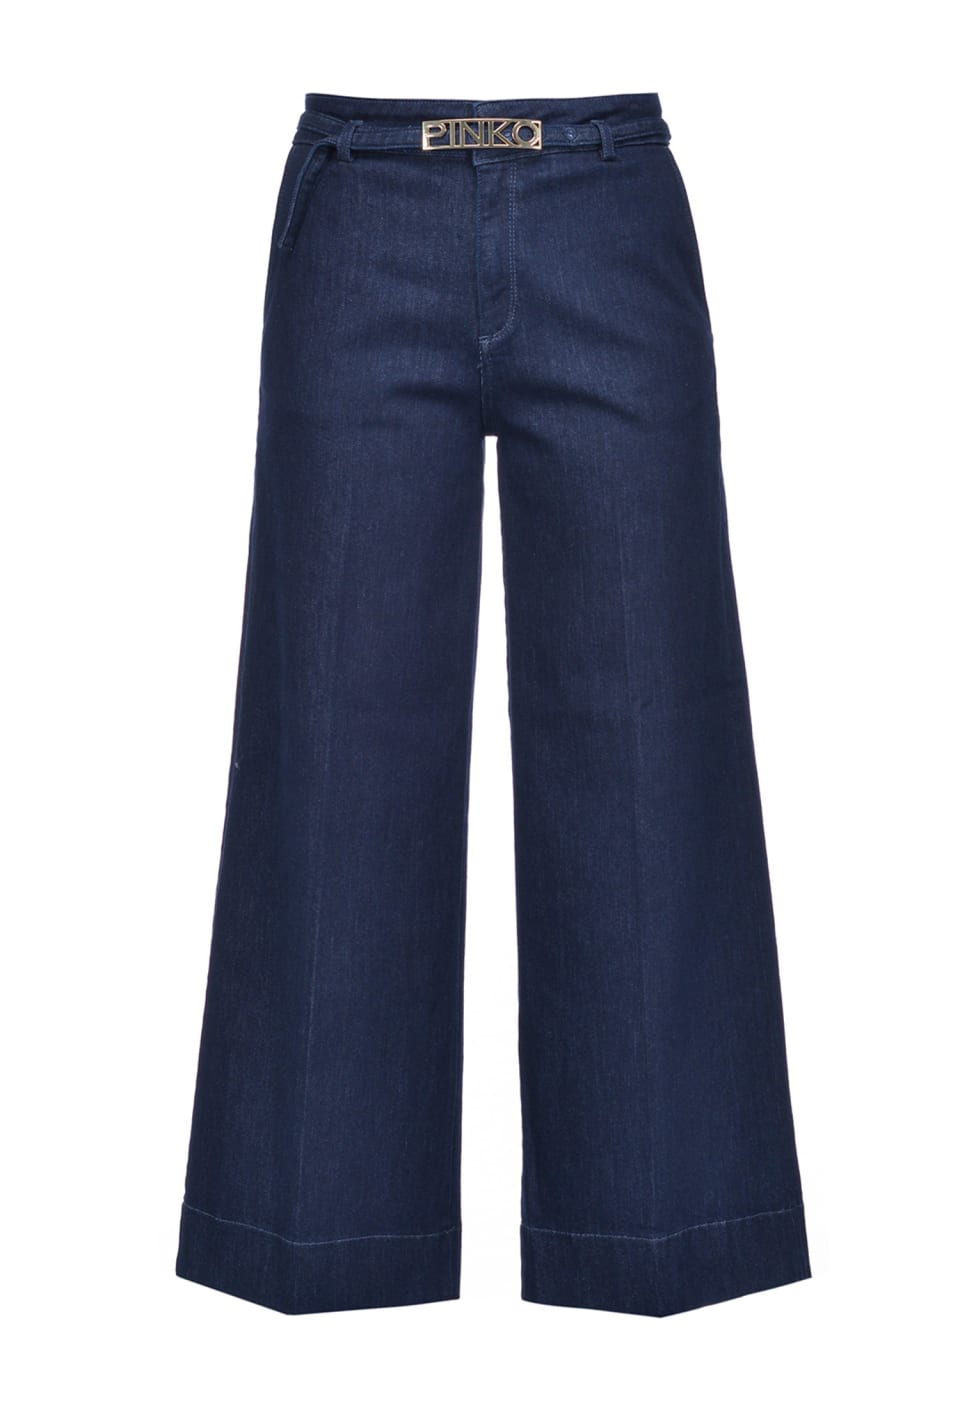 Slim palazzo jeans in stretch twill denim - Pinko